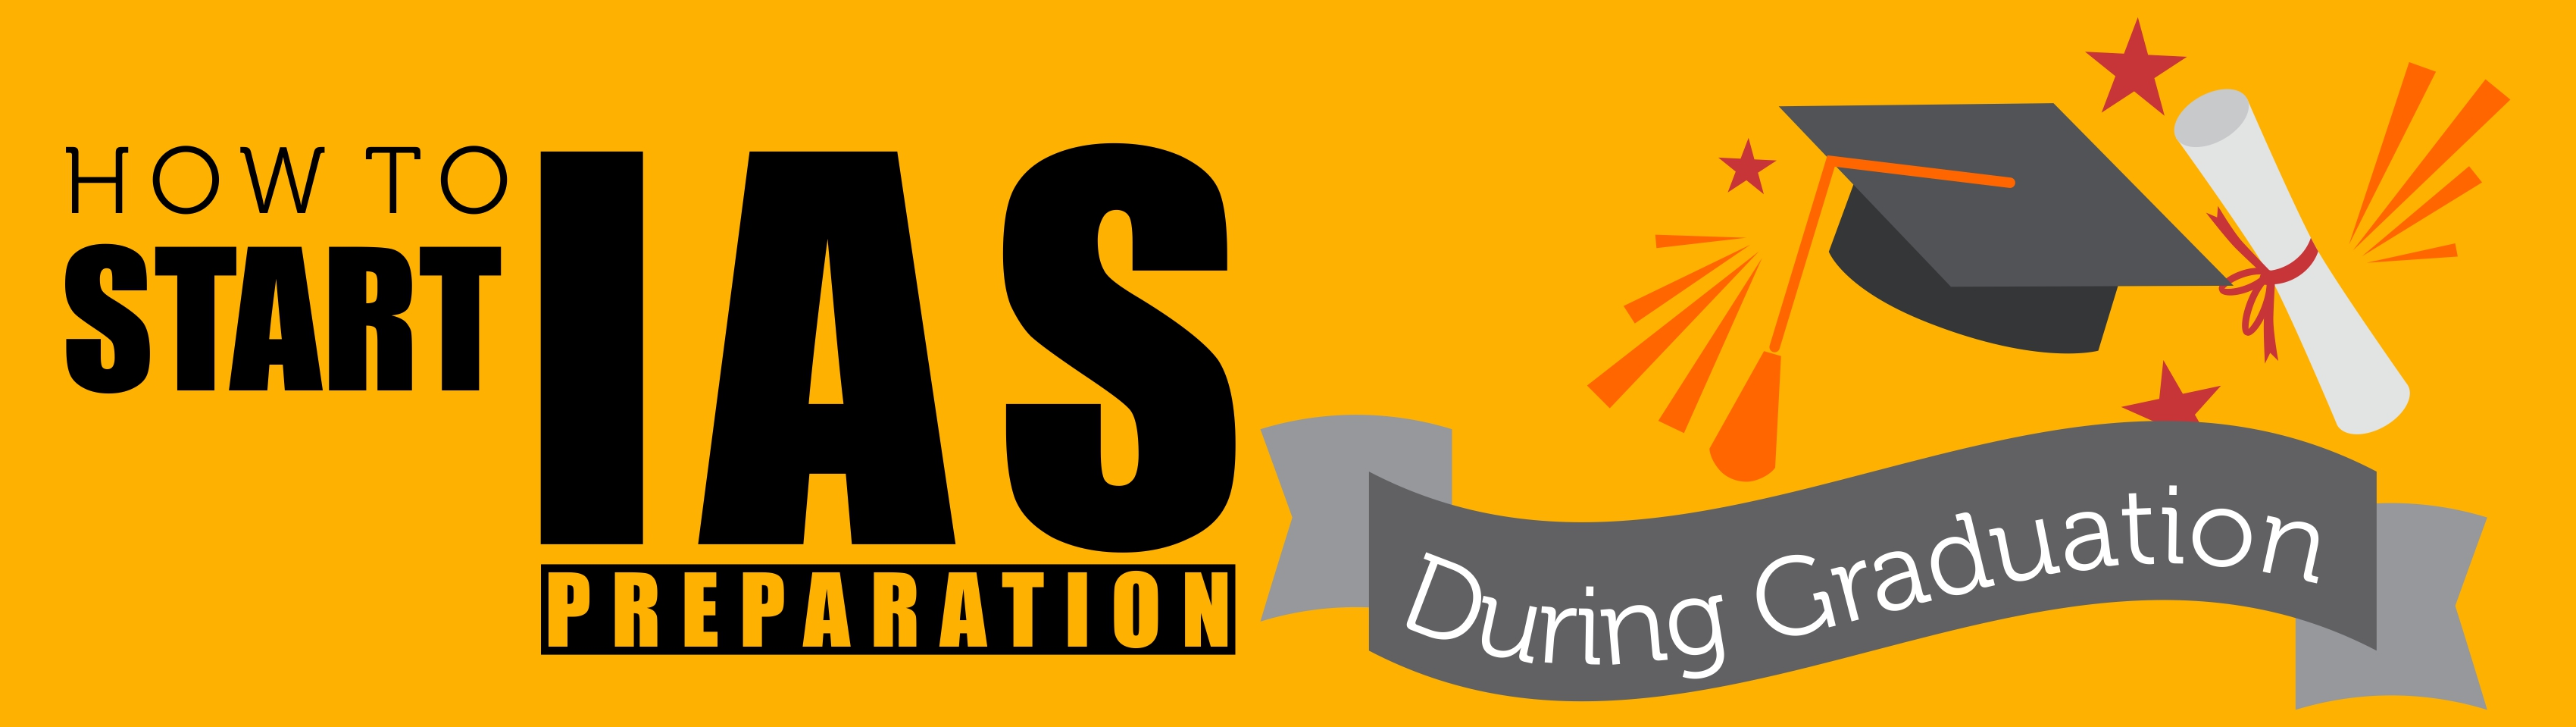 how to start IAS preparation during graduation